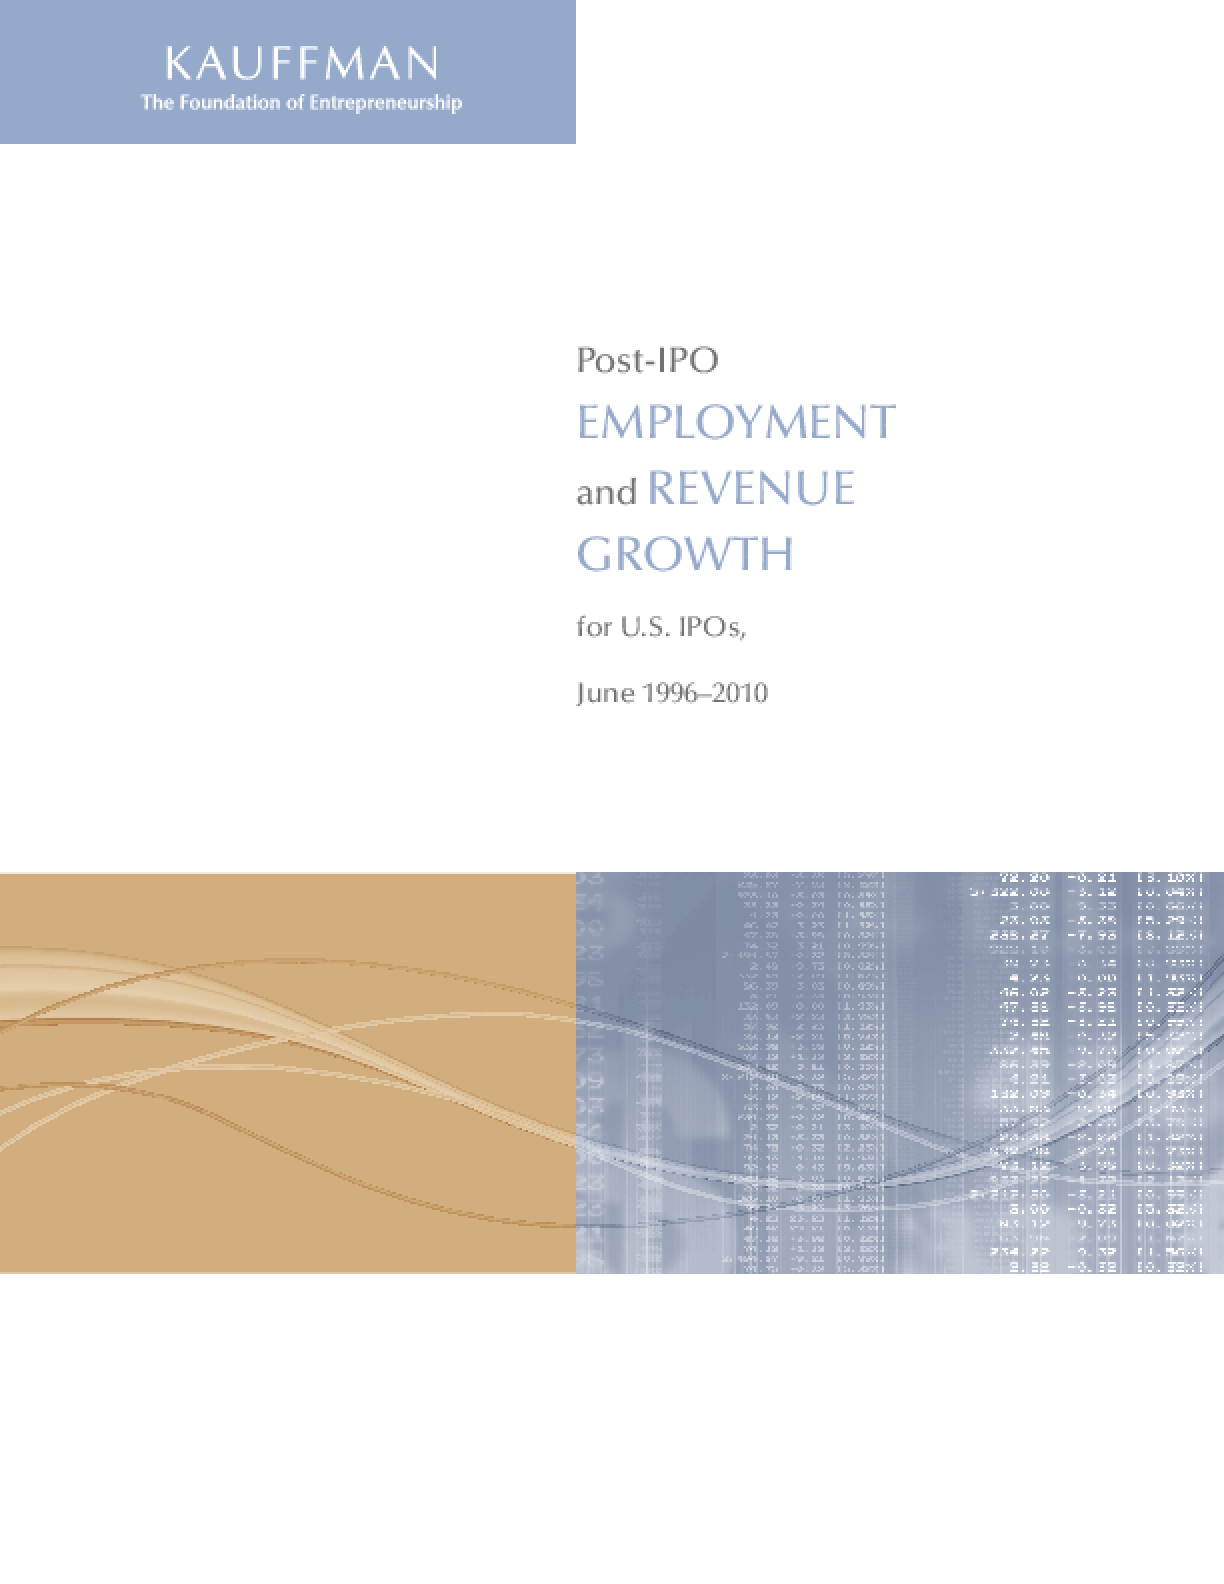 Post-IPO Employment and Revenue Growth for U.S. IPOs, June 1996-2010